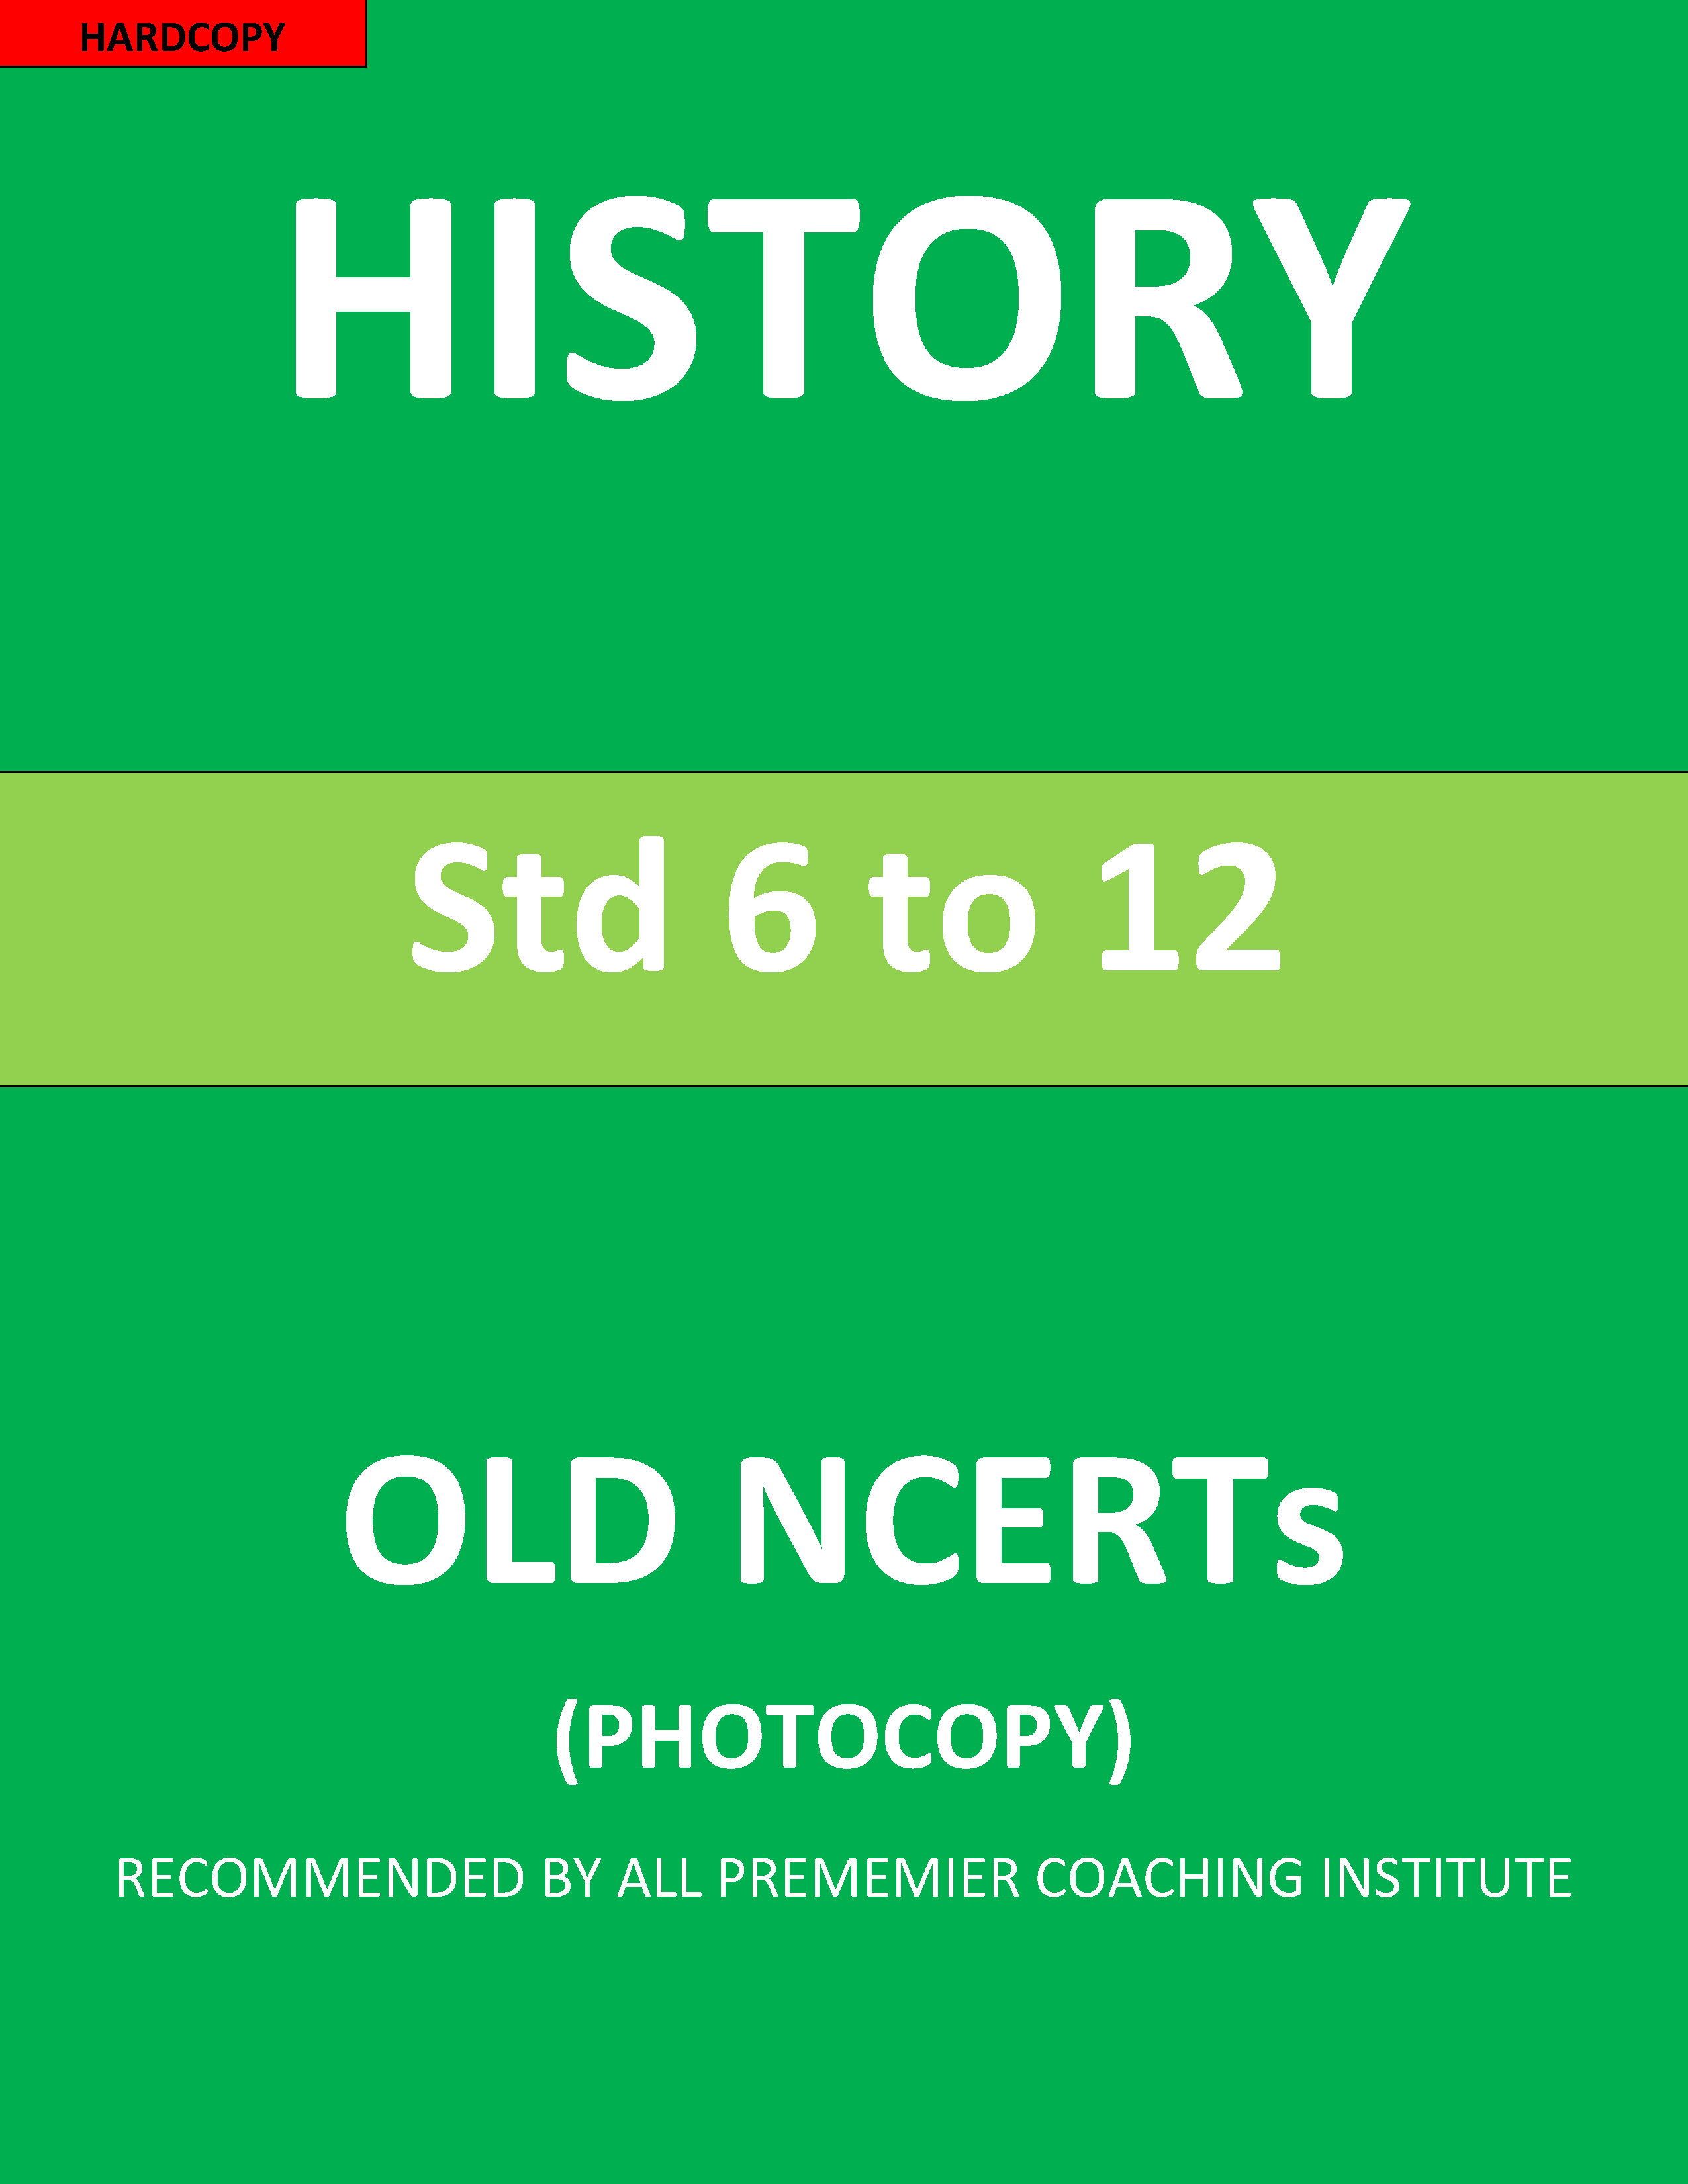 Old NCERT 6th to 12th History Printed